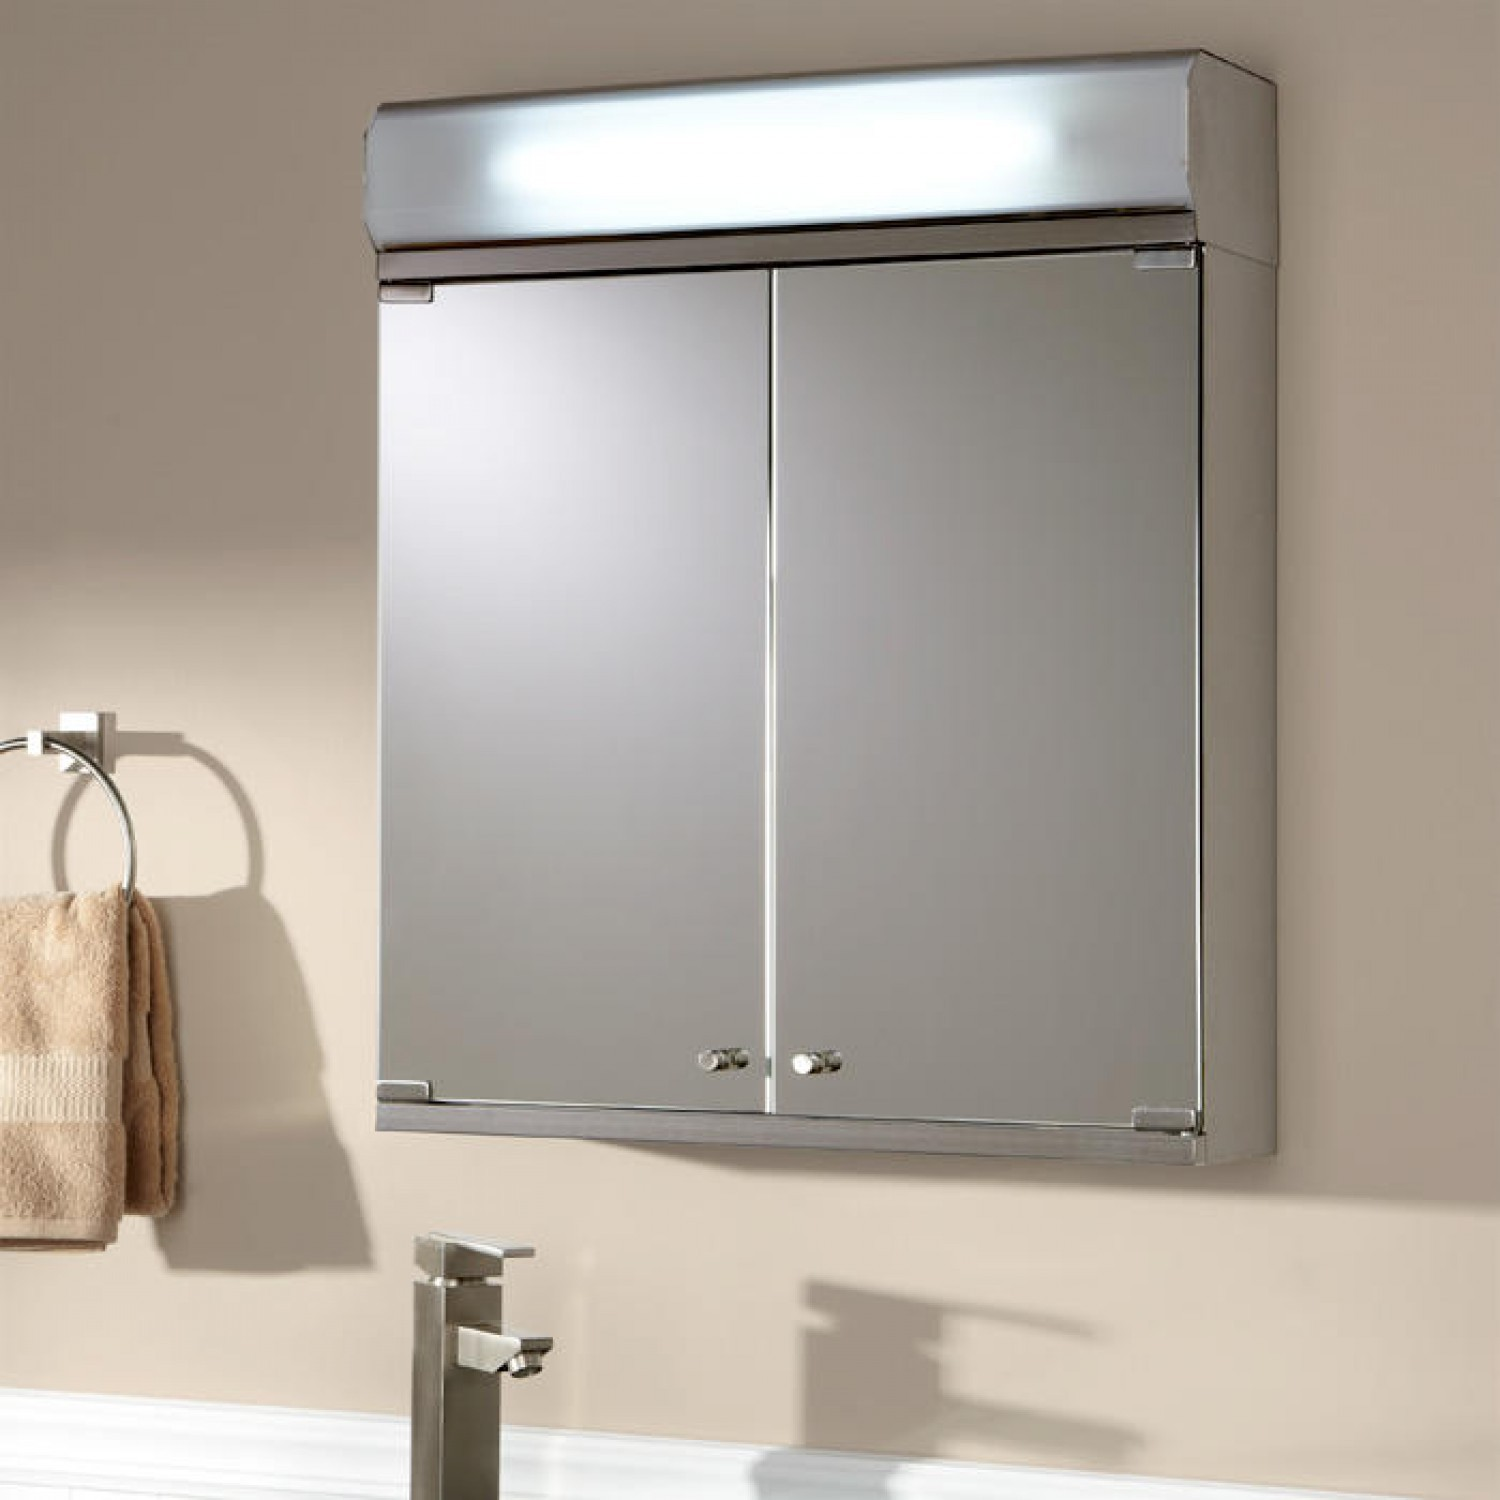 Bathroom Medicine Cabinets with Lights Awesome Bathroom Medicine Cabinets Mirrors Lights Bathroom Mirrors Decoration